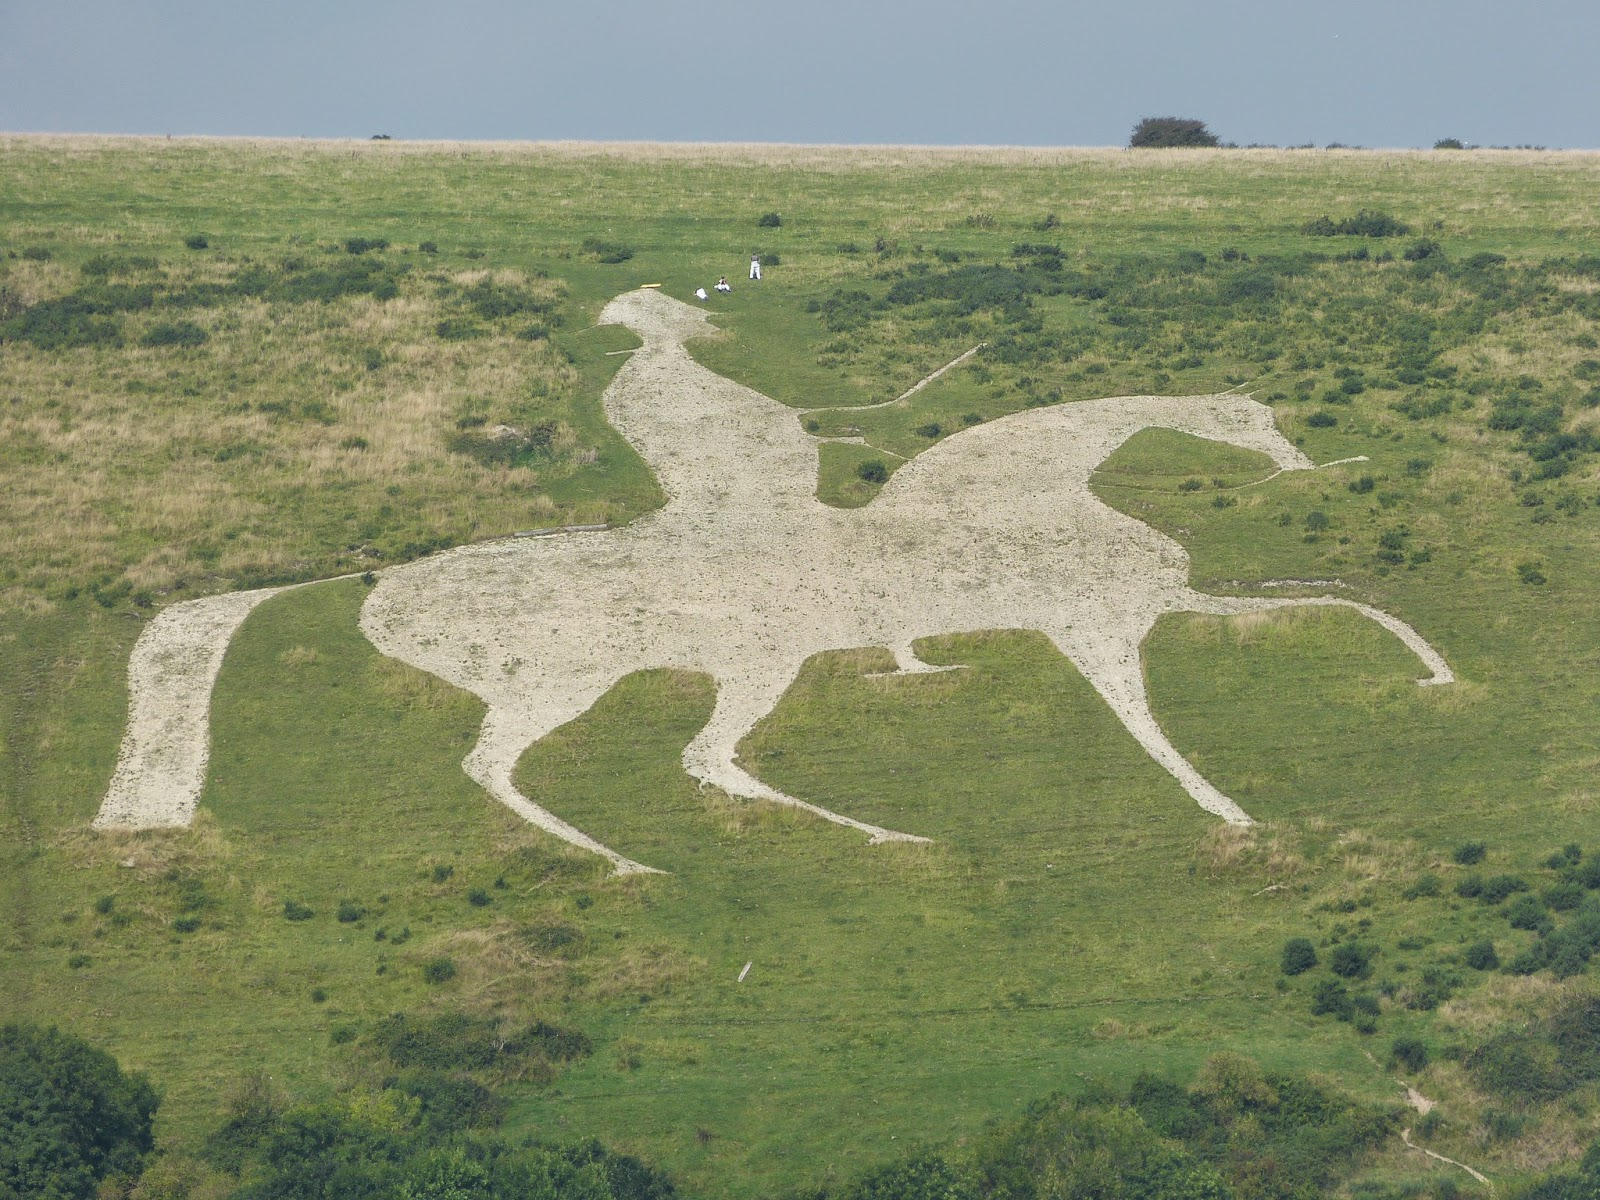 The White Horse, Osmington, depicting George III on horseback